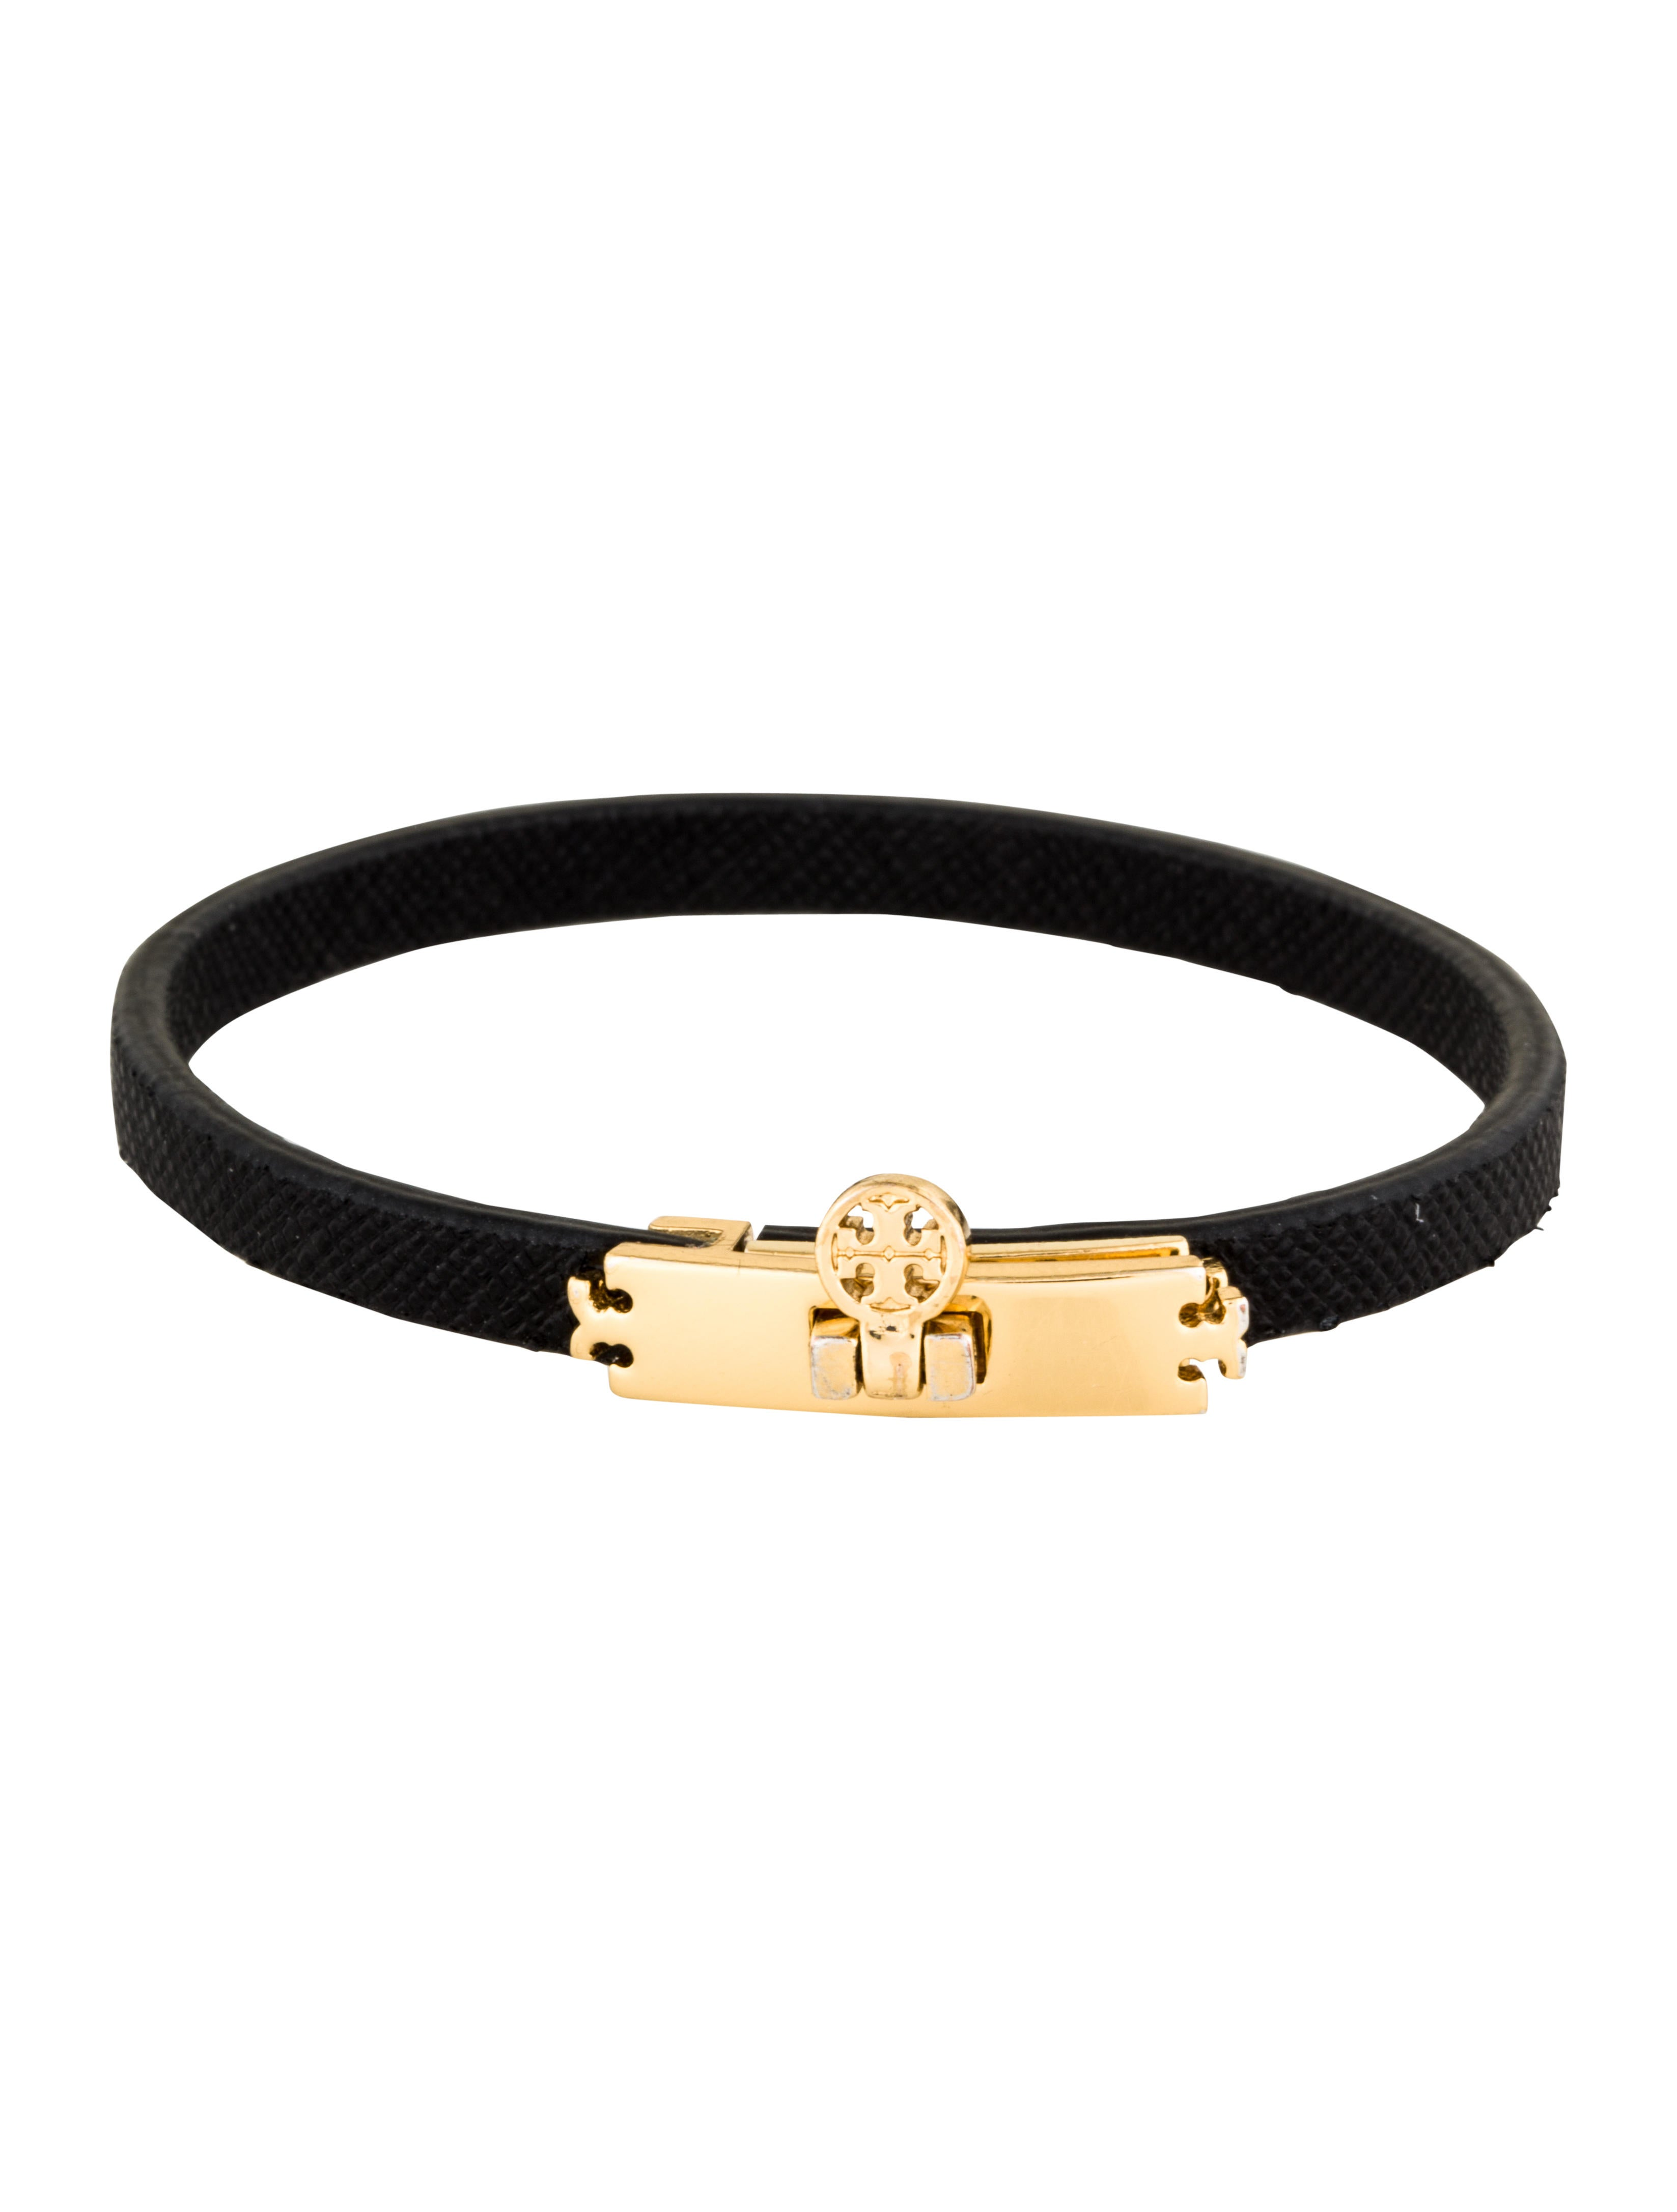 Turnlock Leather Wrap Bracelet